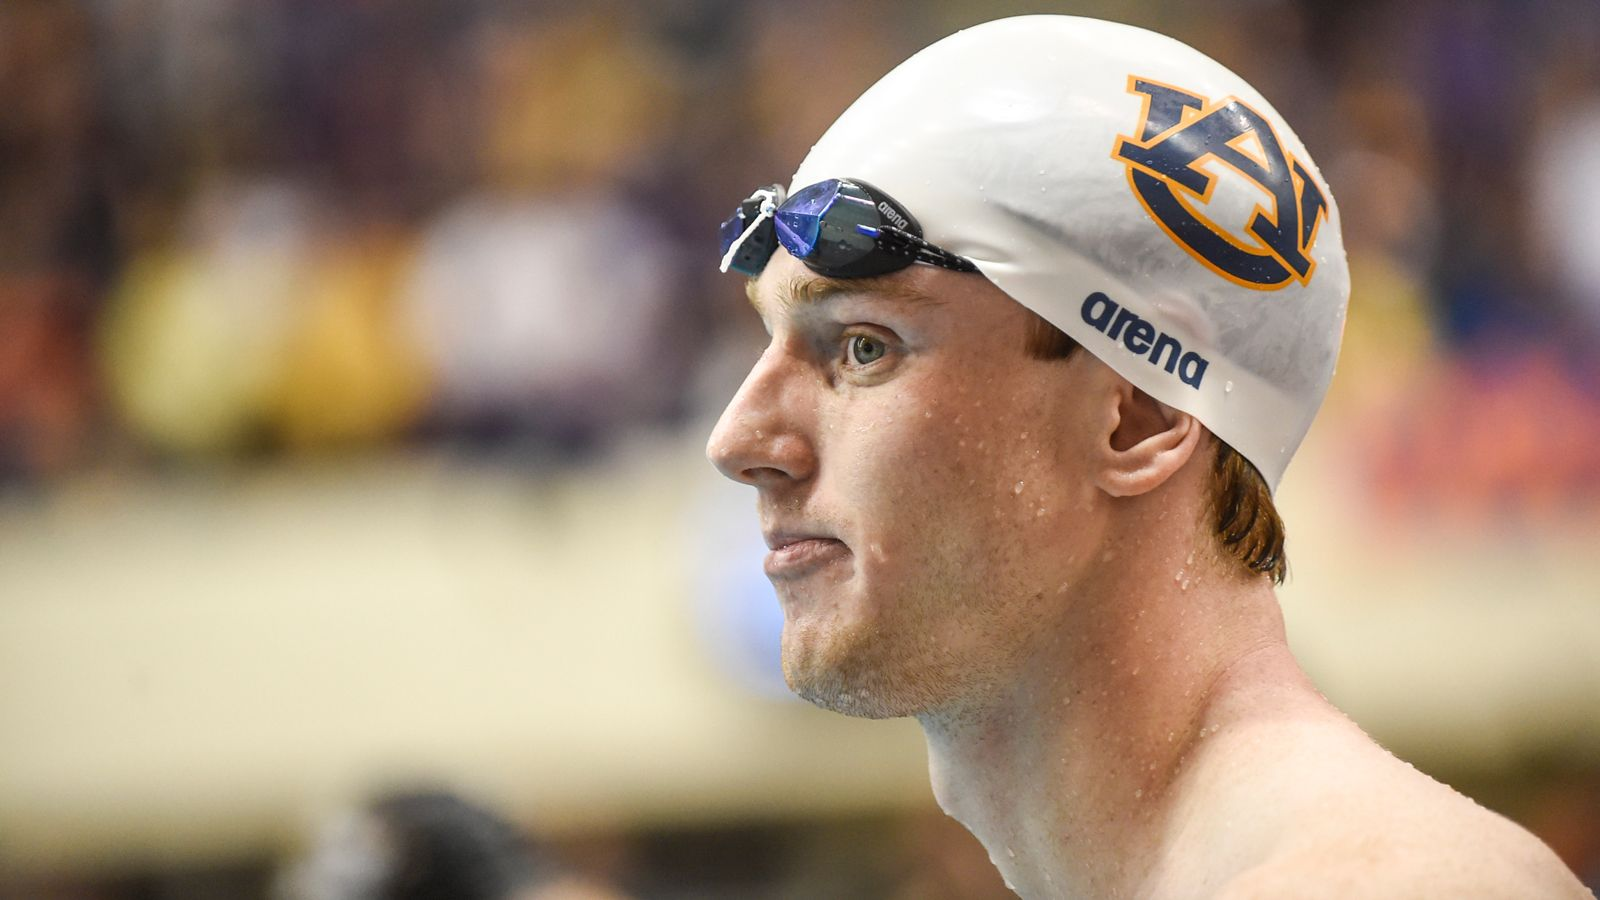 Auburn swimming's Browning succeeds in return to pool